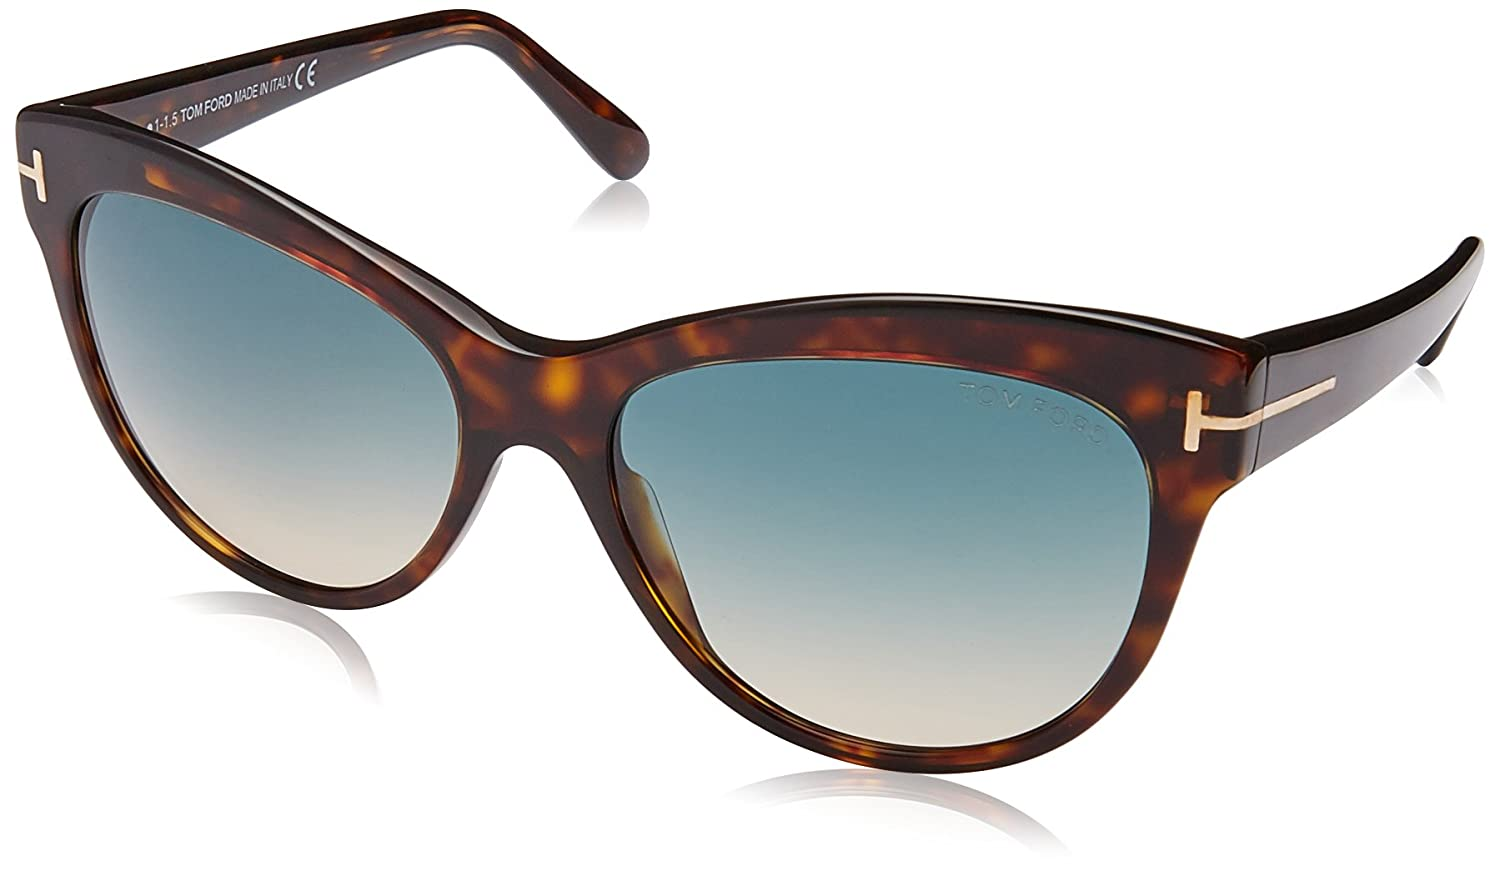 02330438048 Amazon.com  Tom Ford 430 52P Tortoise Lily Cats Eyes Sunglasses Lens  Category 2 Size 56mm  Tom Ford  Clothing